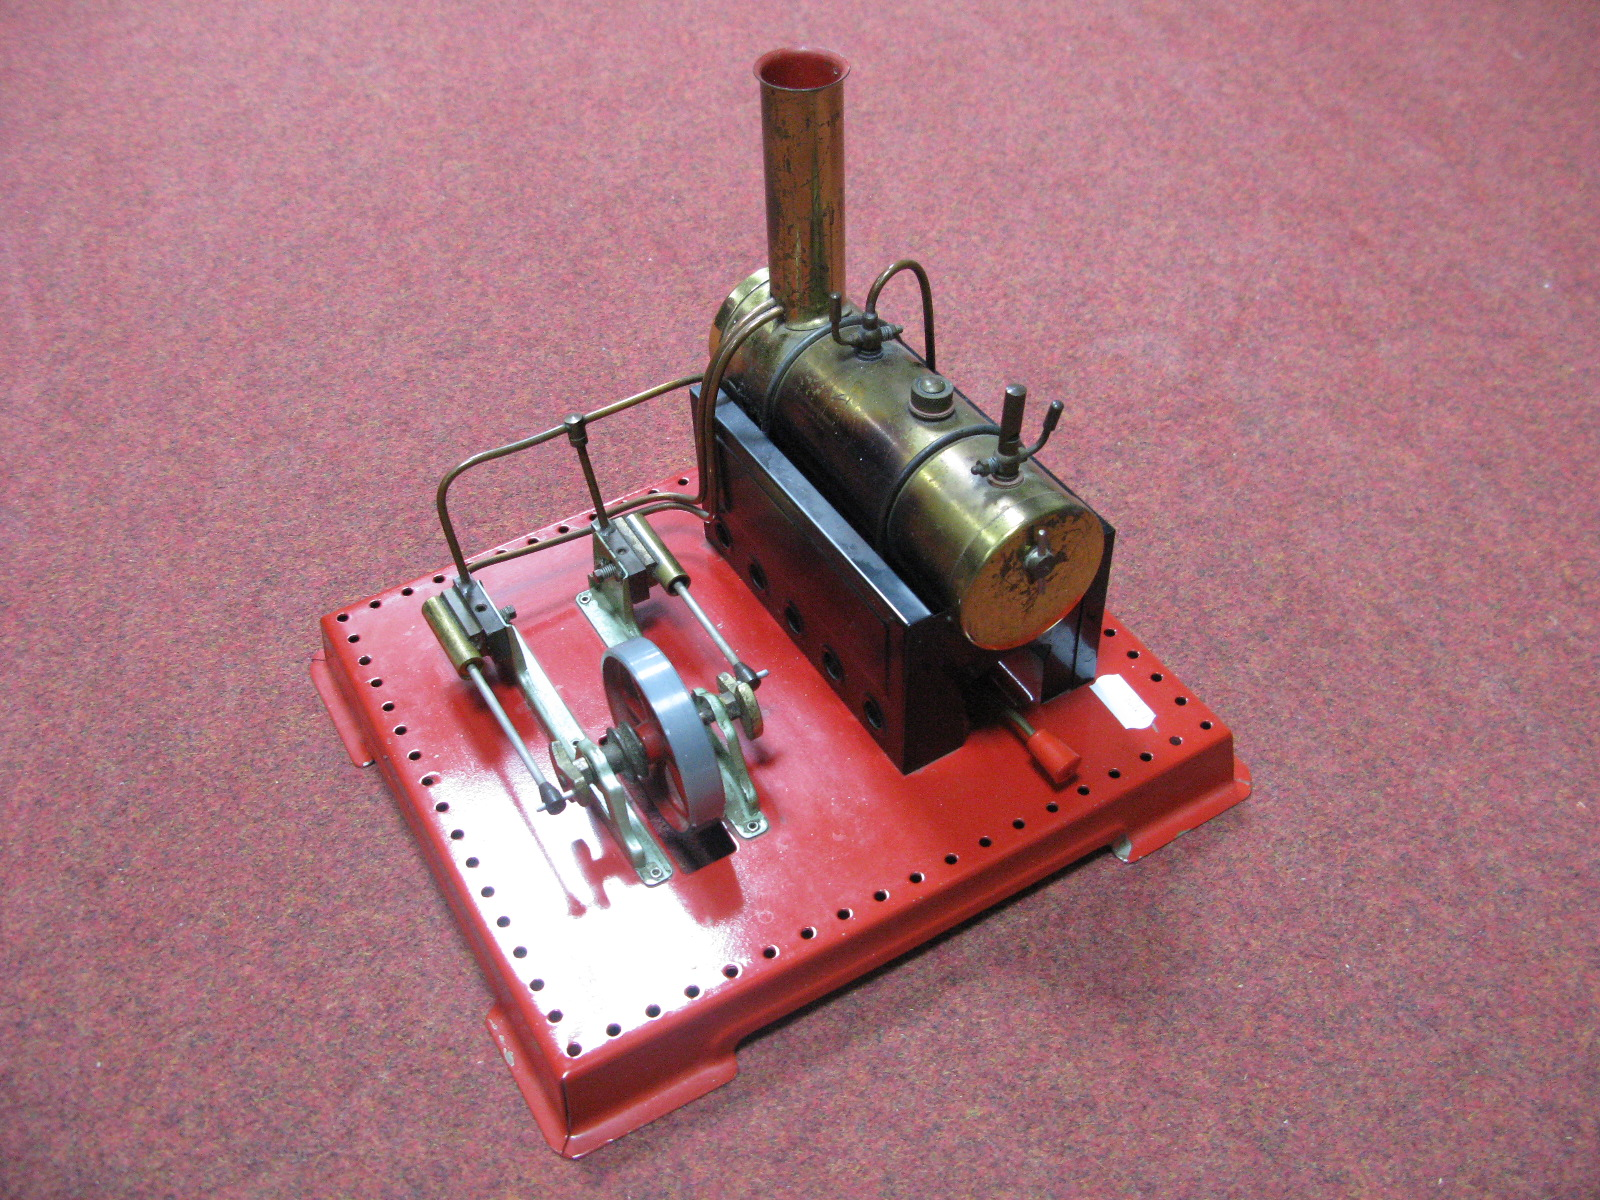 Lot 17 - A Mamod SE4 Twin Cylinder Stationary Live Steam Engine, model has been steamed, burner present,